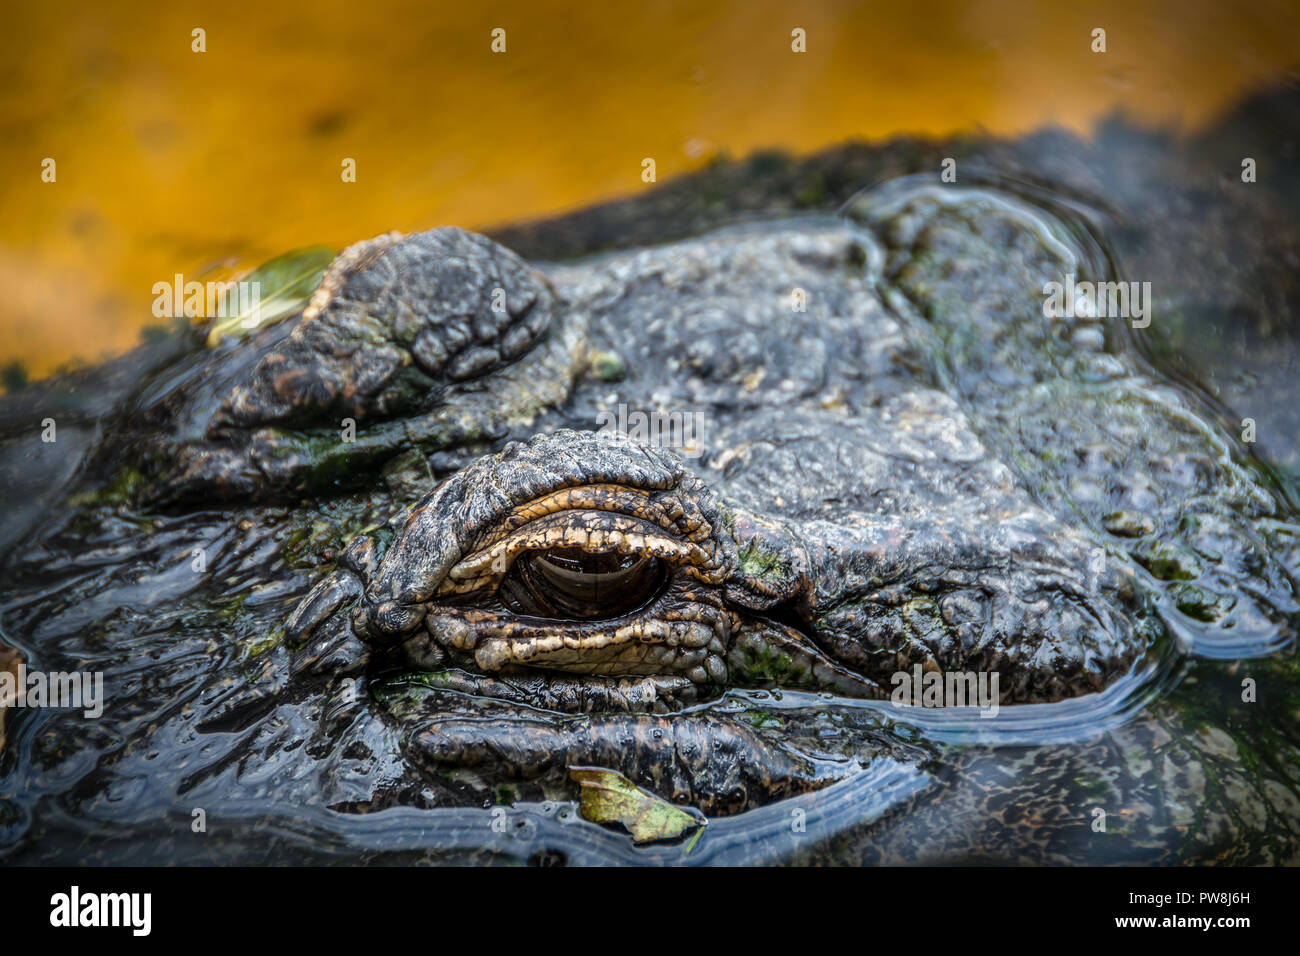 Alligator from the Sawgress Recreational Park in the Florida Everglades - Stock Image